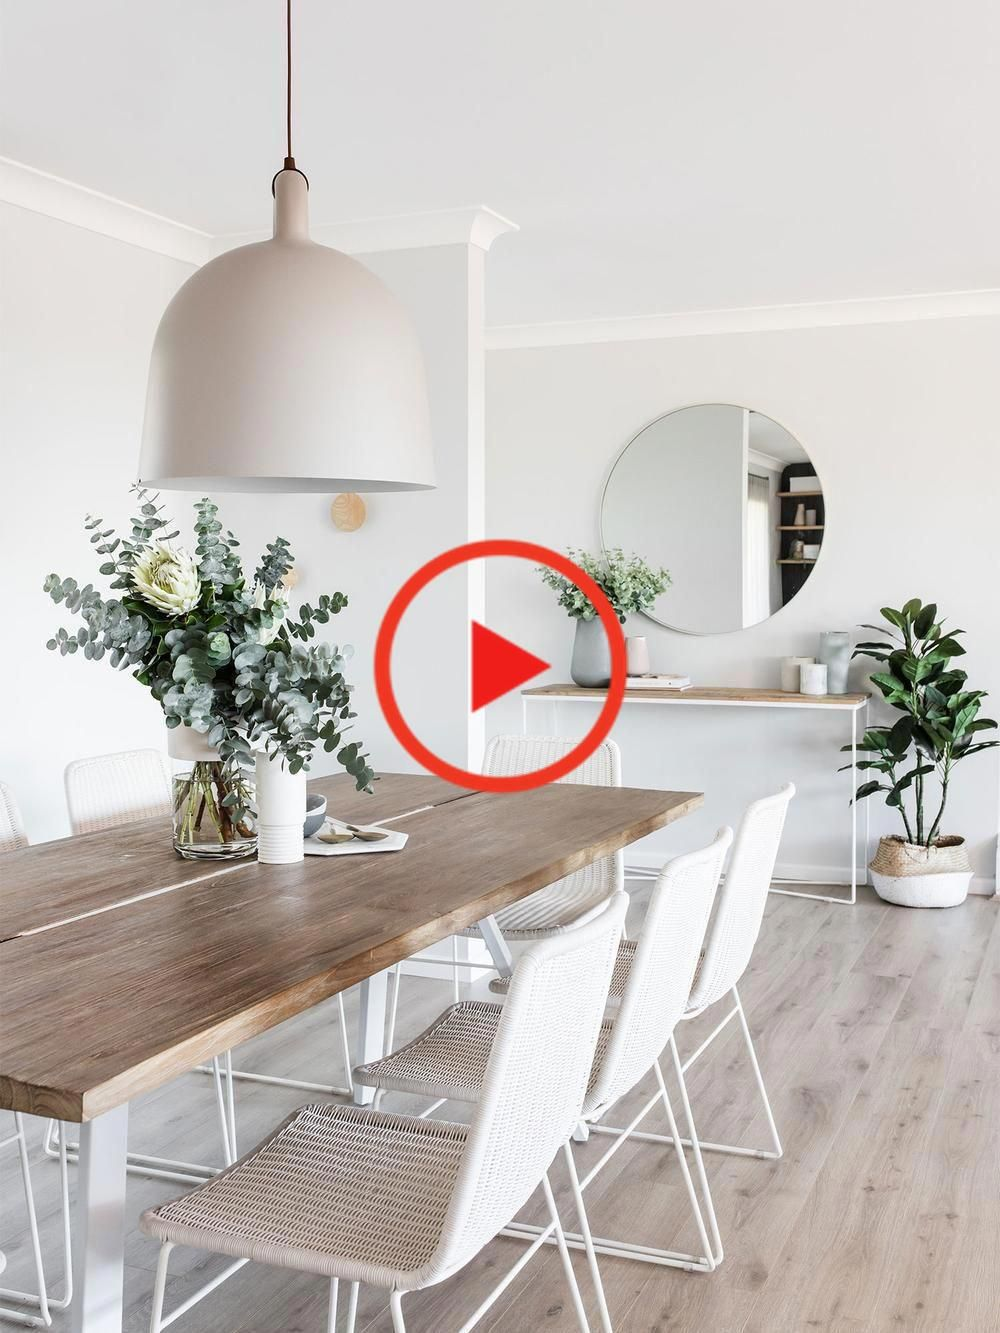 26$ : Cheap and Best Living Room Lunchroomtips And Selections Of Deco Sofas.htmlLimited Stock Available.Cheap home remodel doors and cheap home decor accessories thrift stores #homedecor